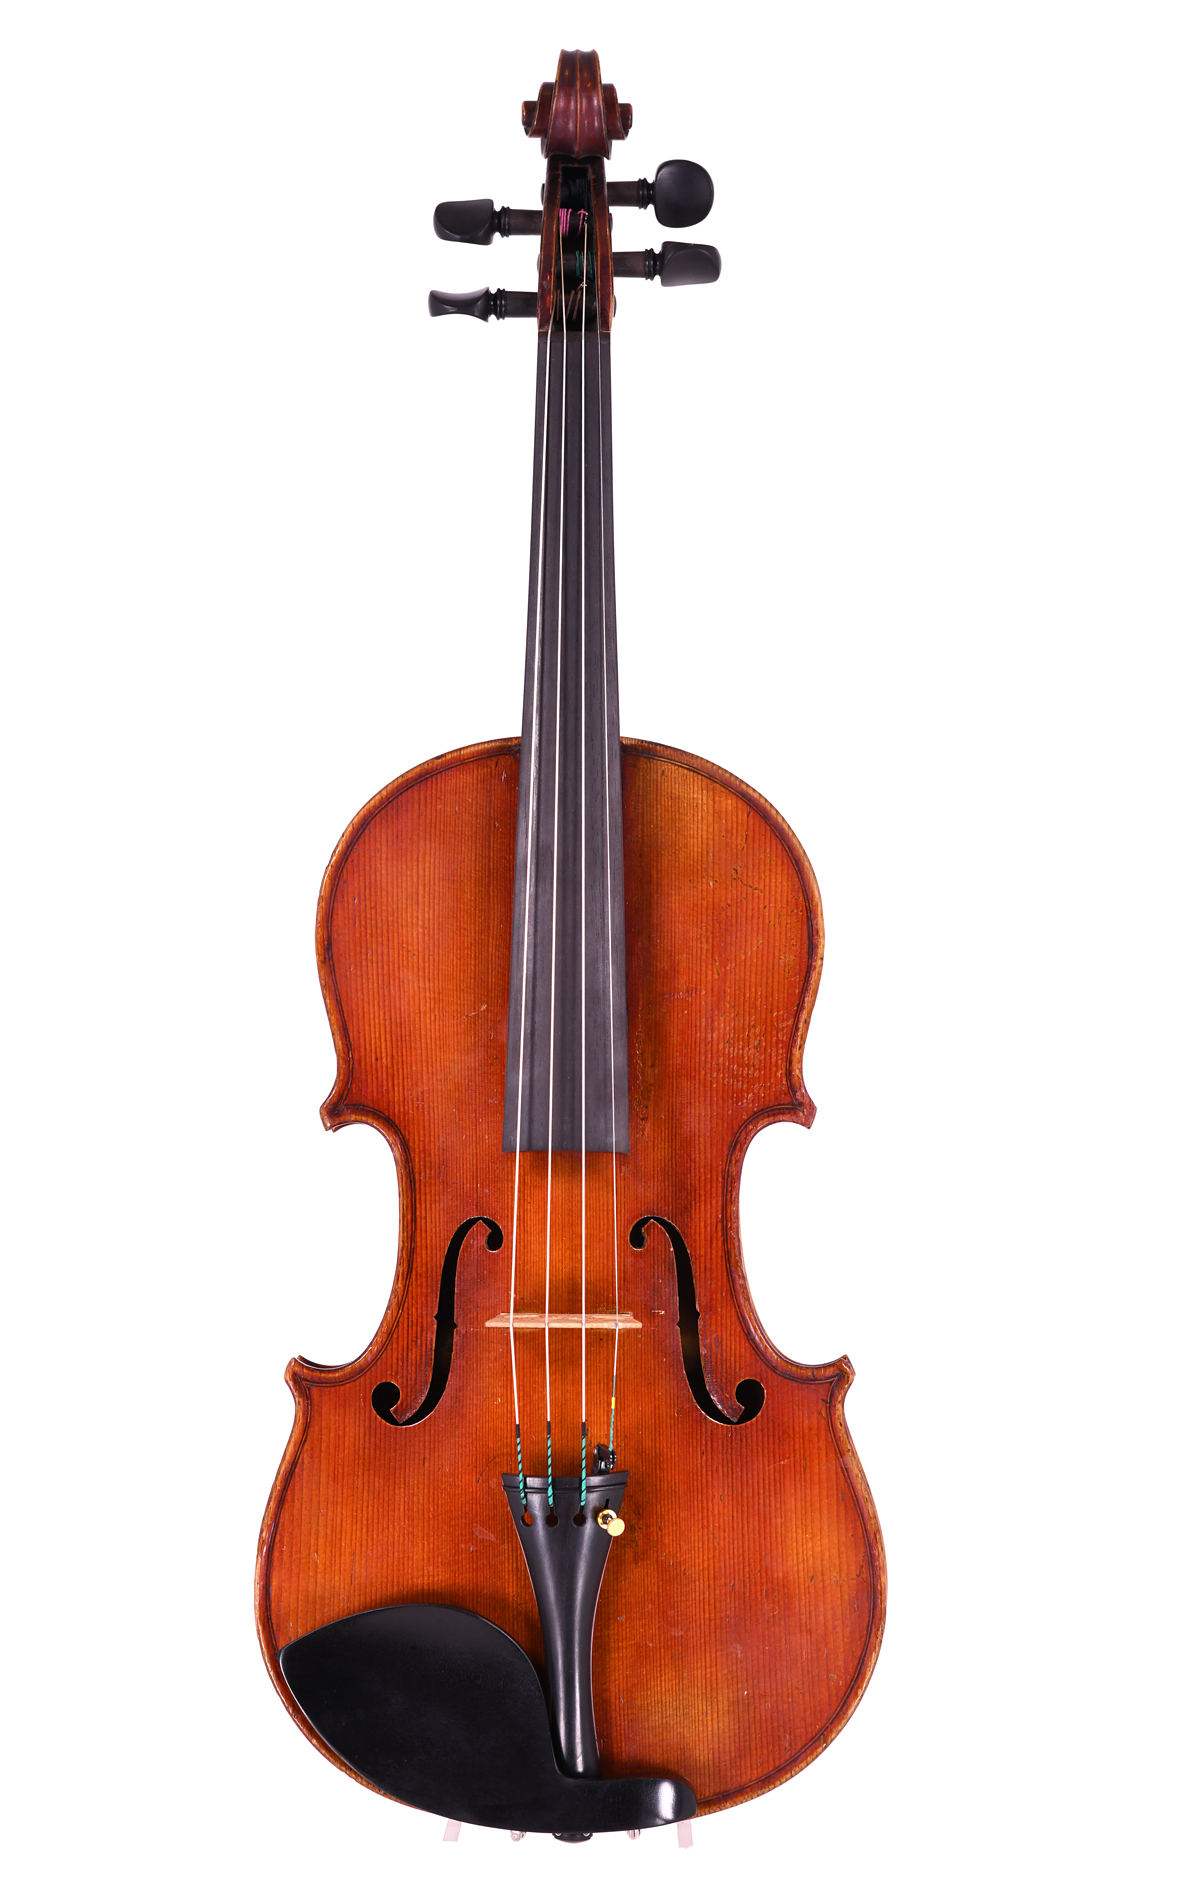 George Adolphus Chanot violin No. 212